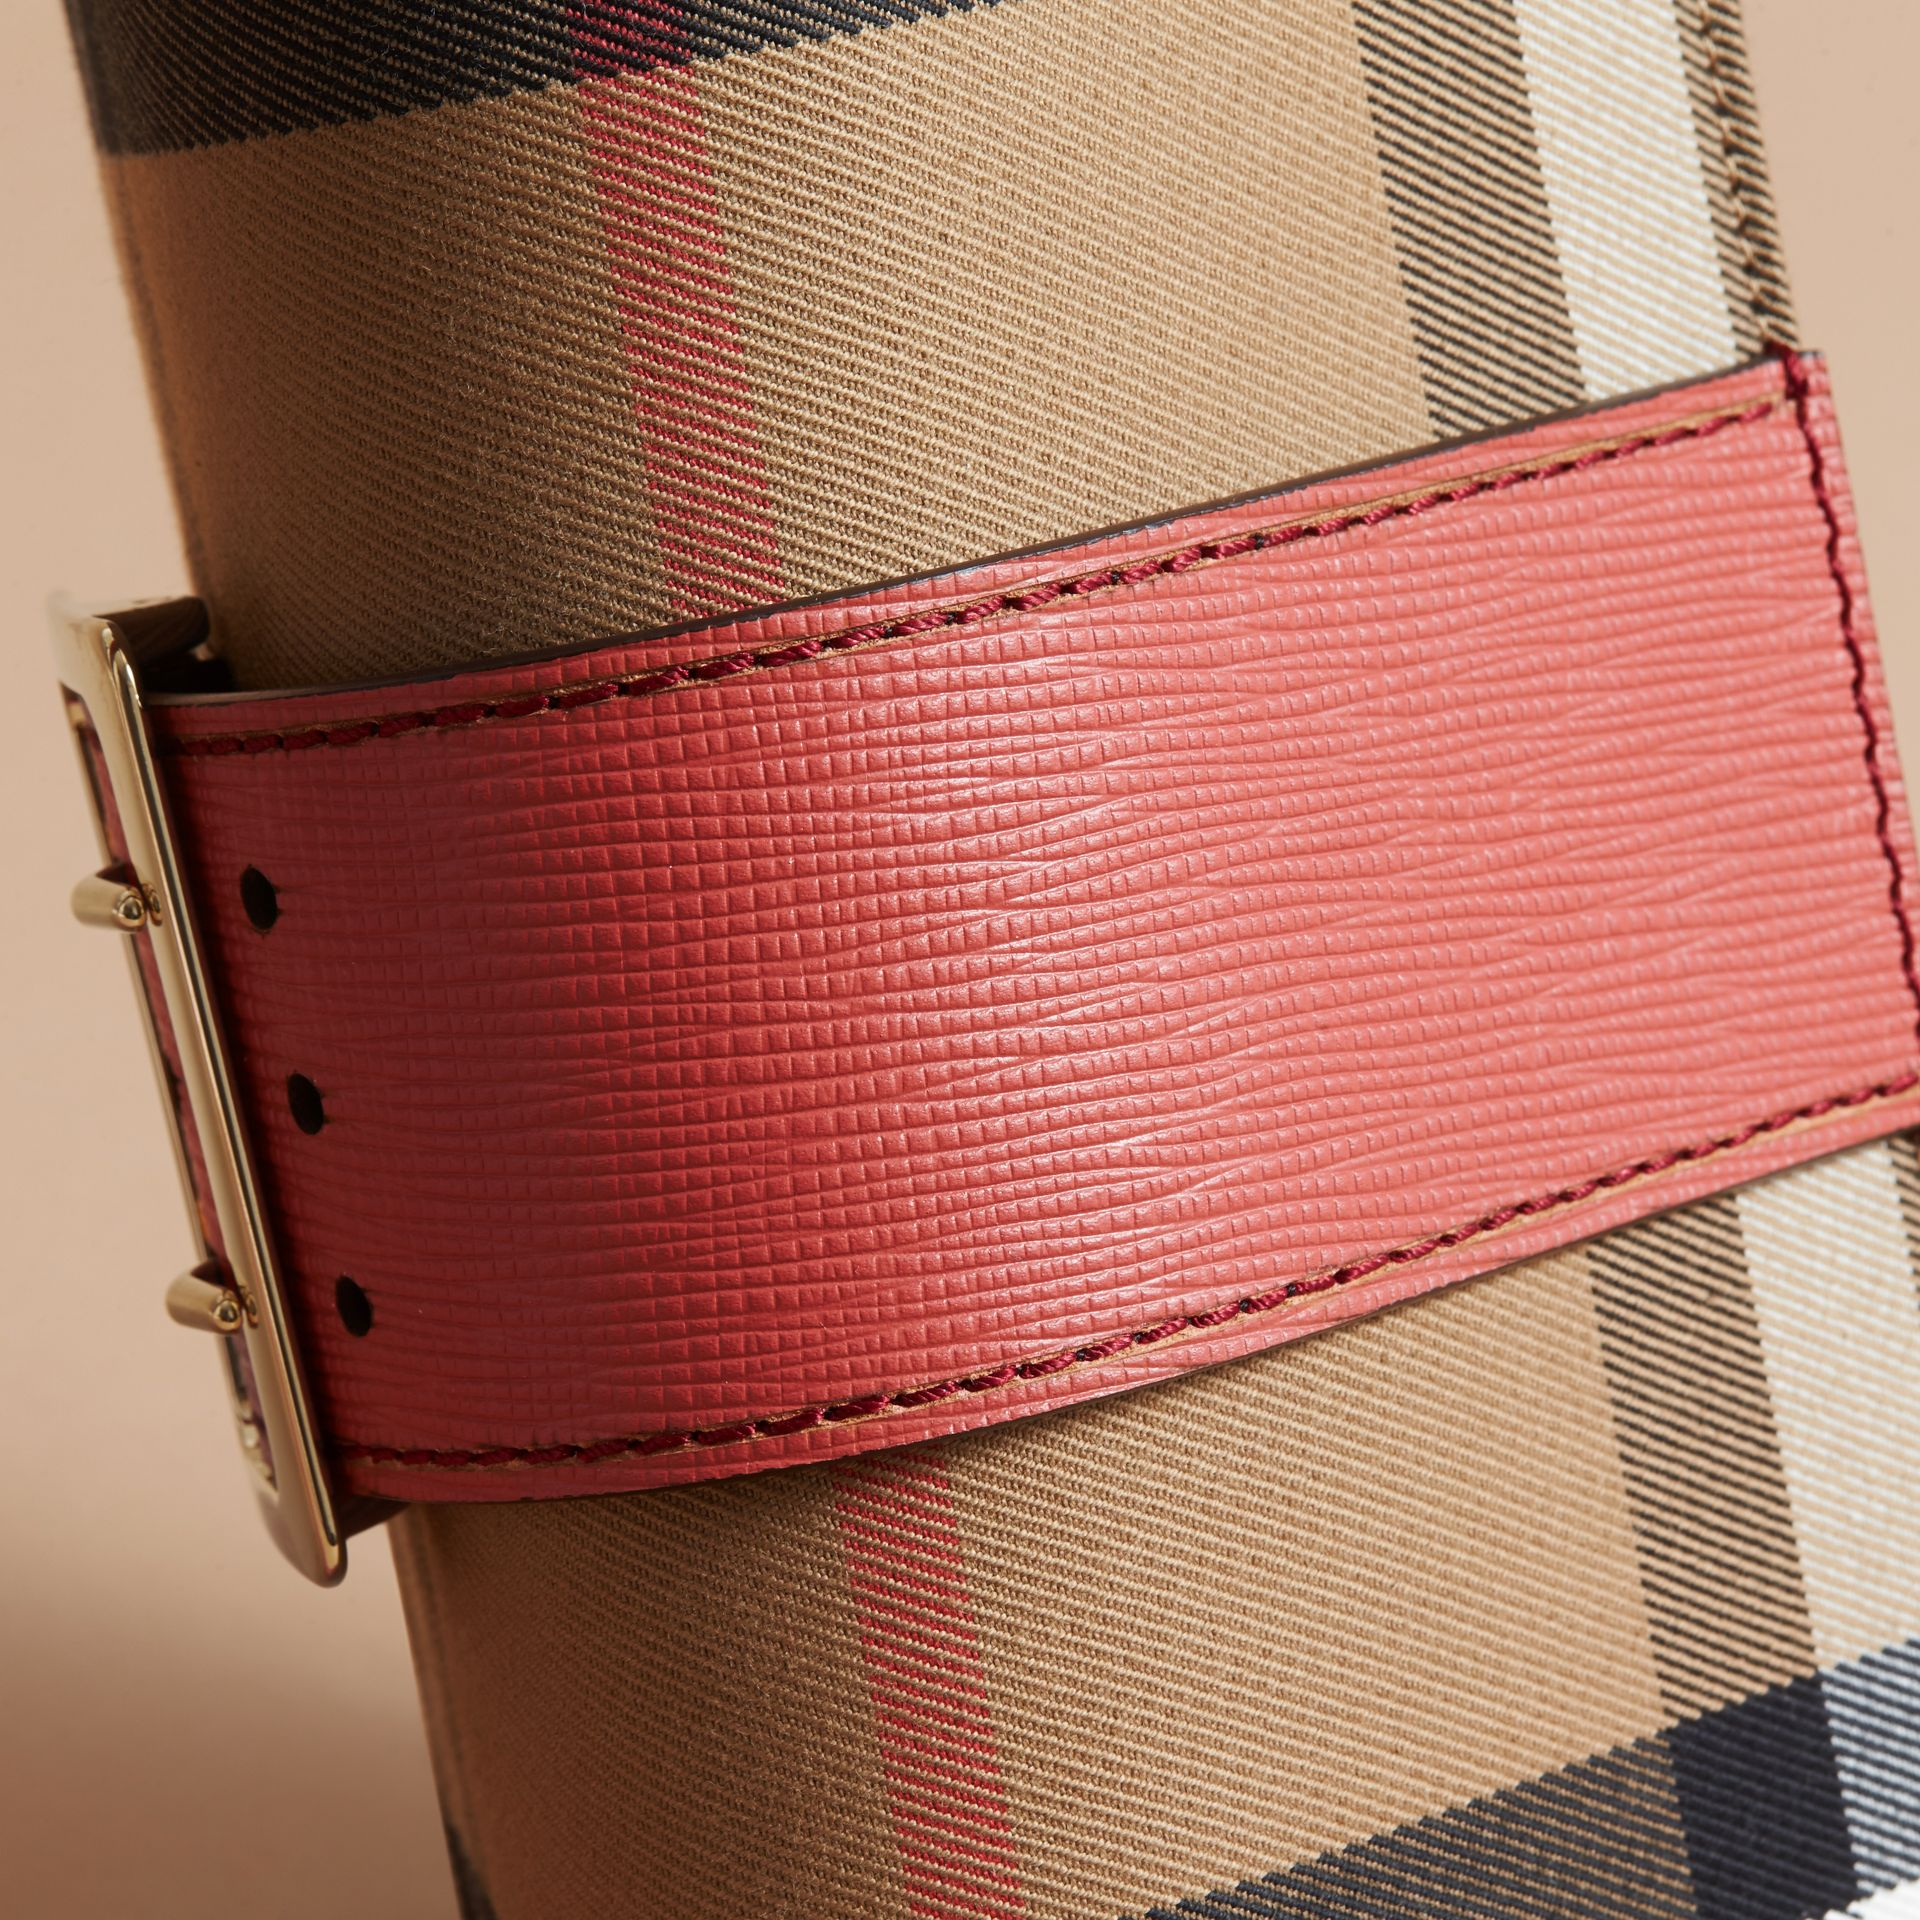 The Small Buckle Bag in House Check and Leather in Cinnamon Red - Women | Burberry - gallery image 6